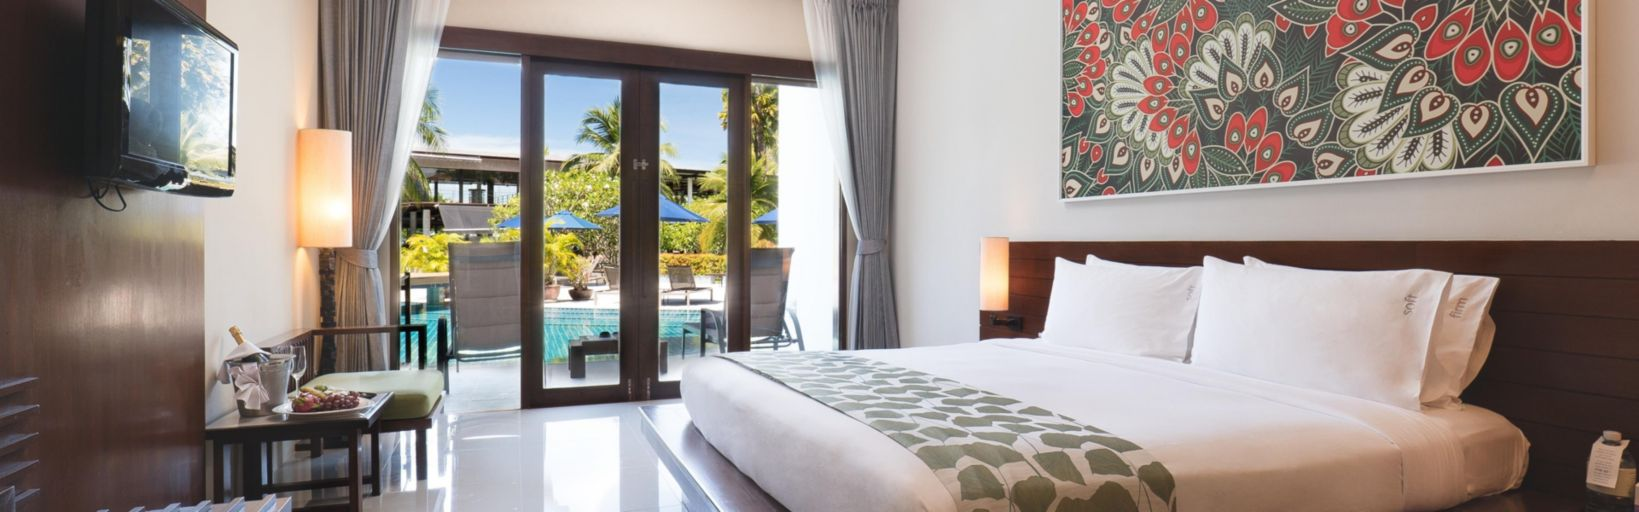 holiday-inn-resort-krabi-5289094458-16×5